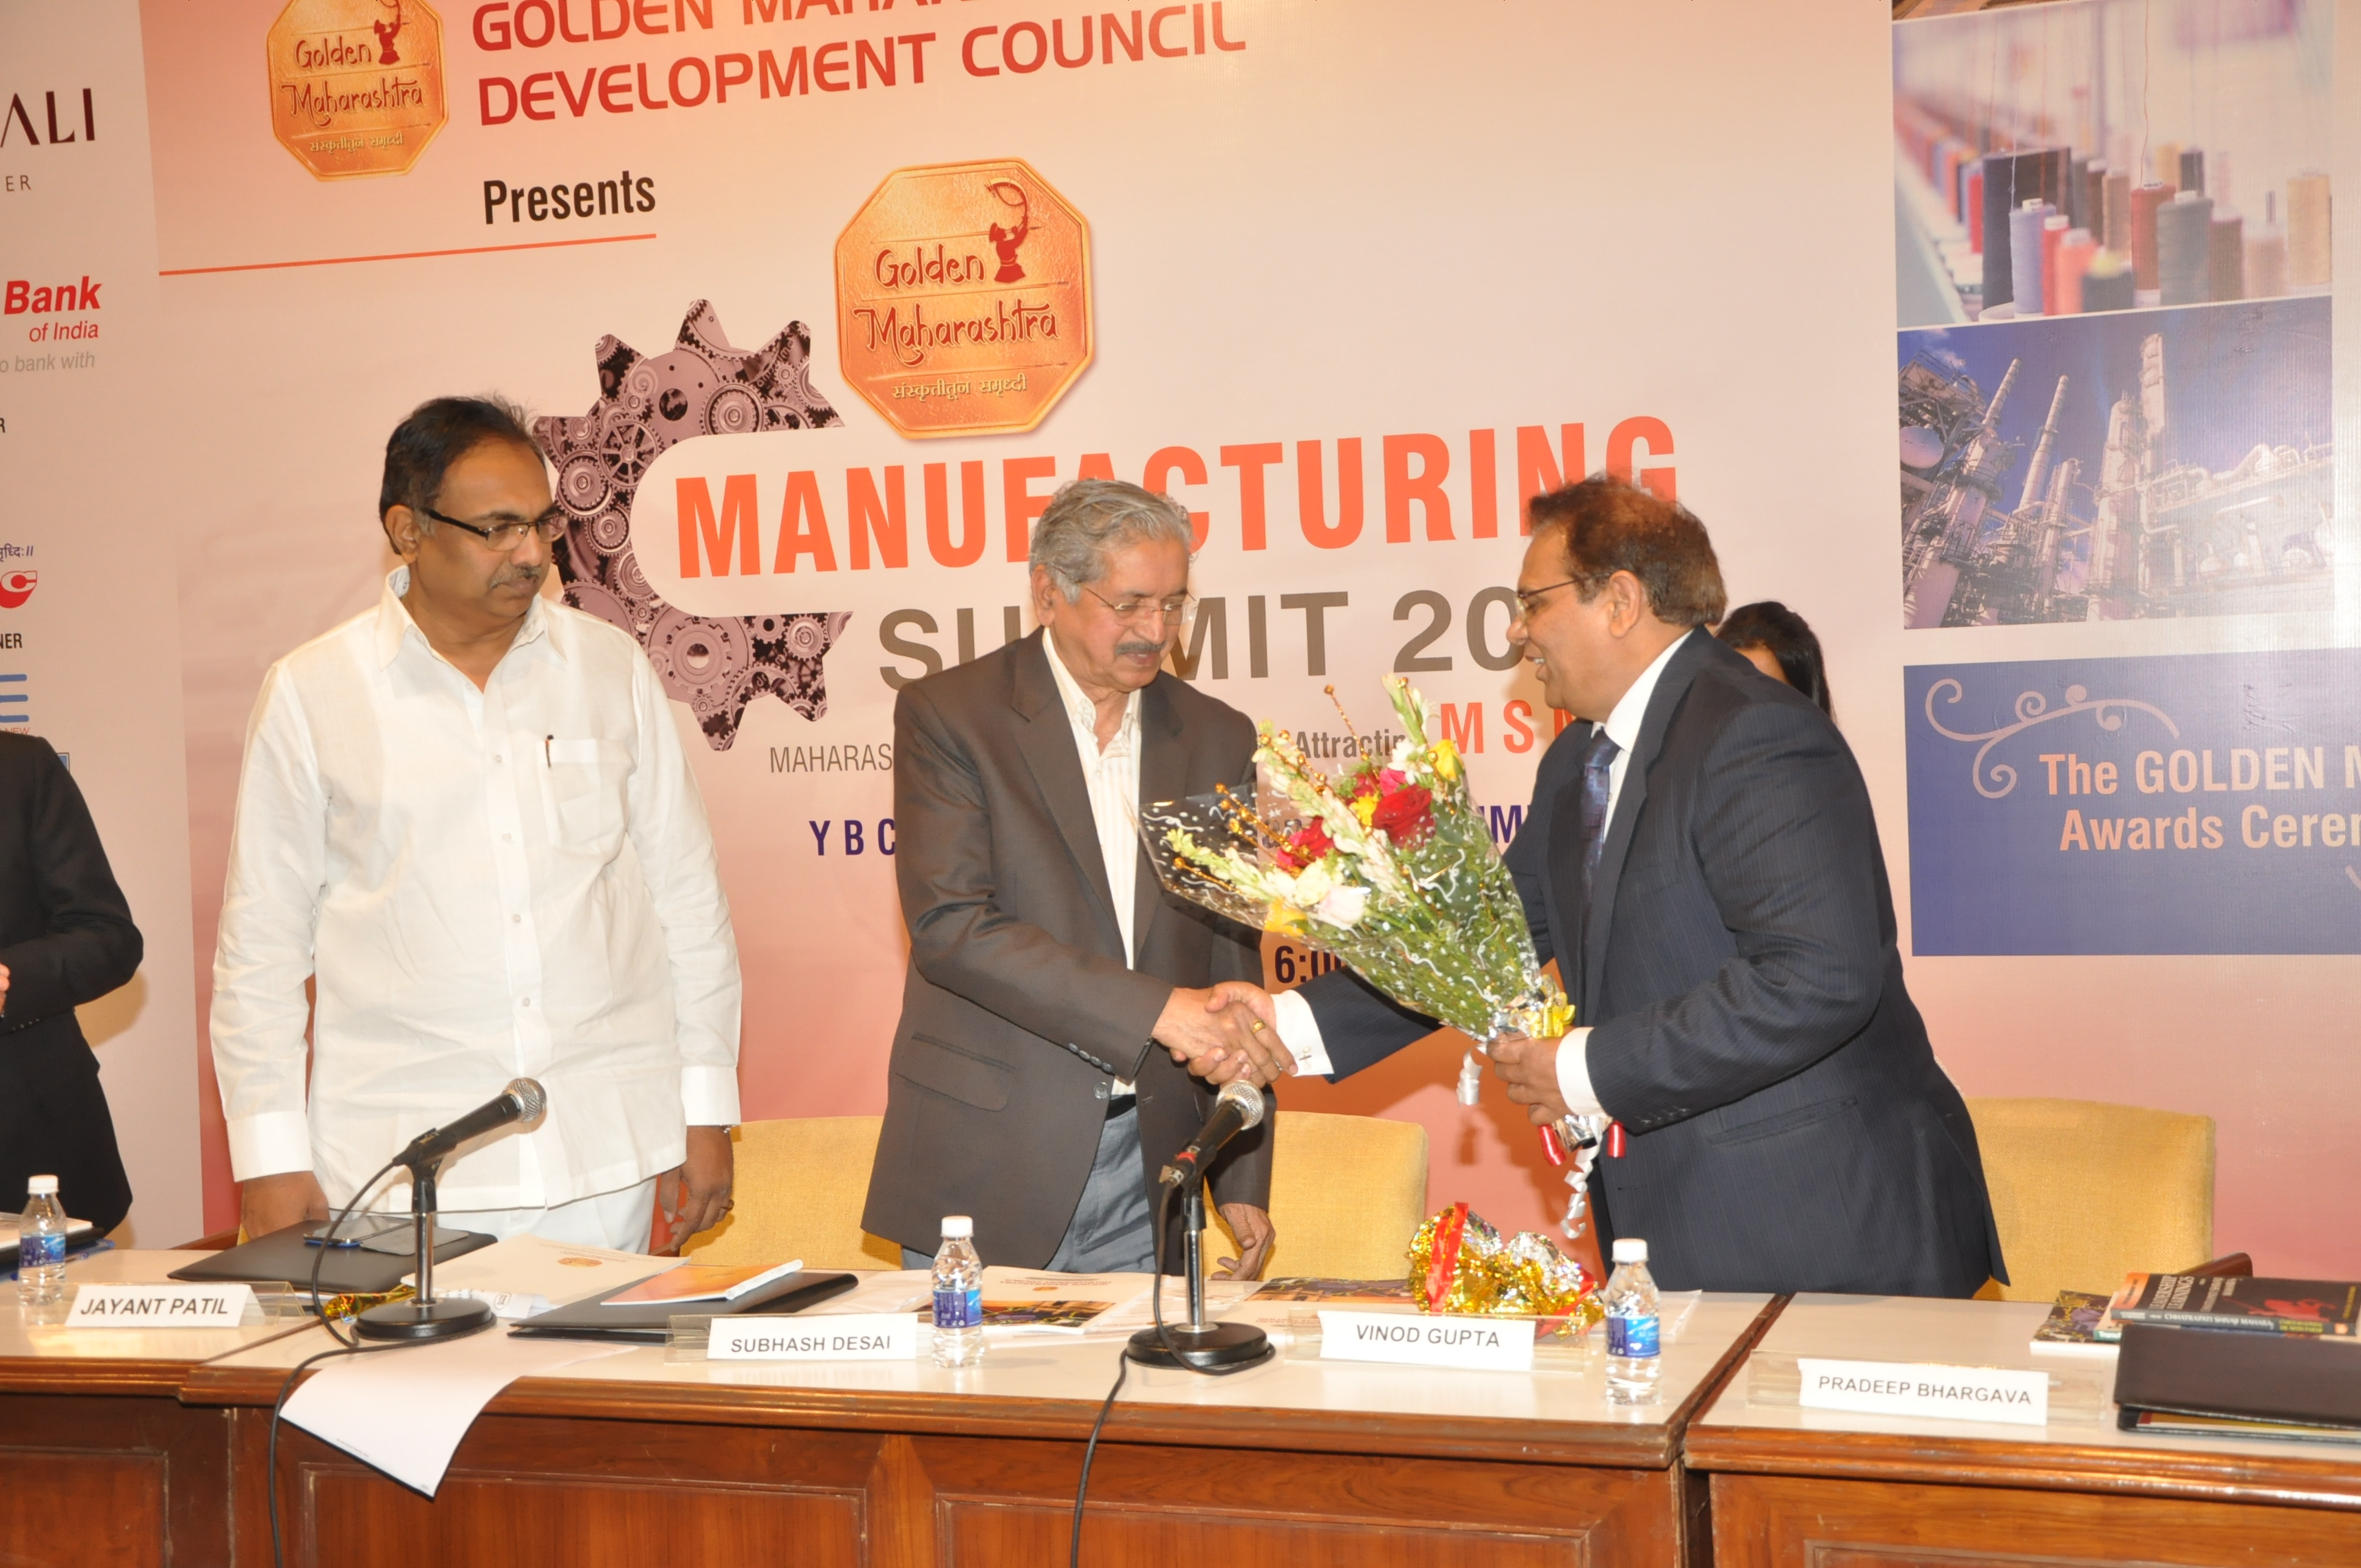 Minister for Industries, Maharashtra, Golden Maharashtra Manufacturing Summit 2015